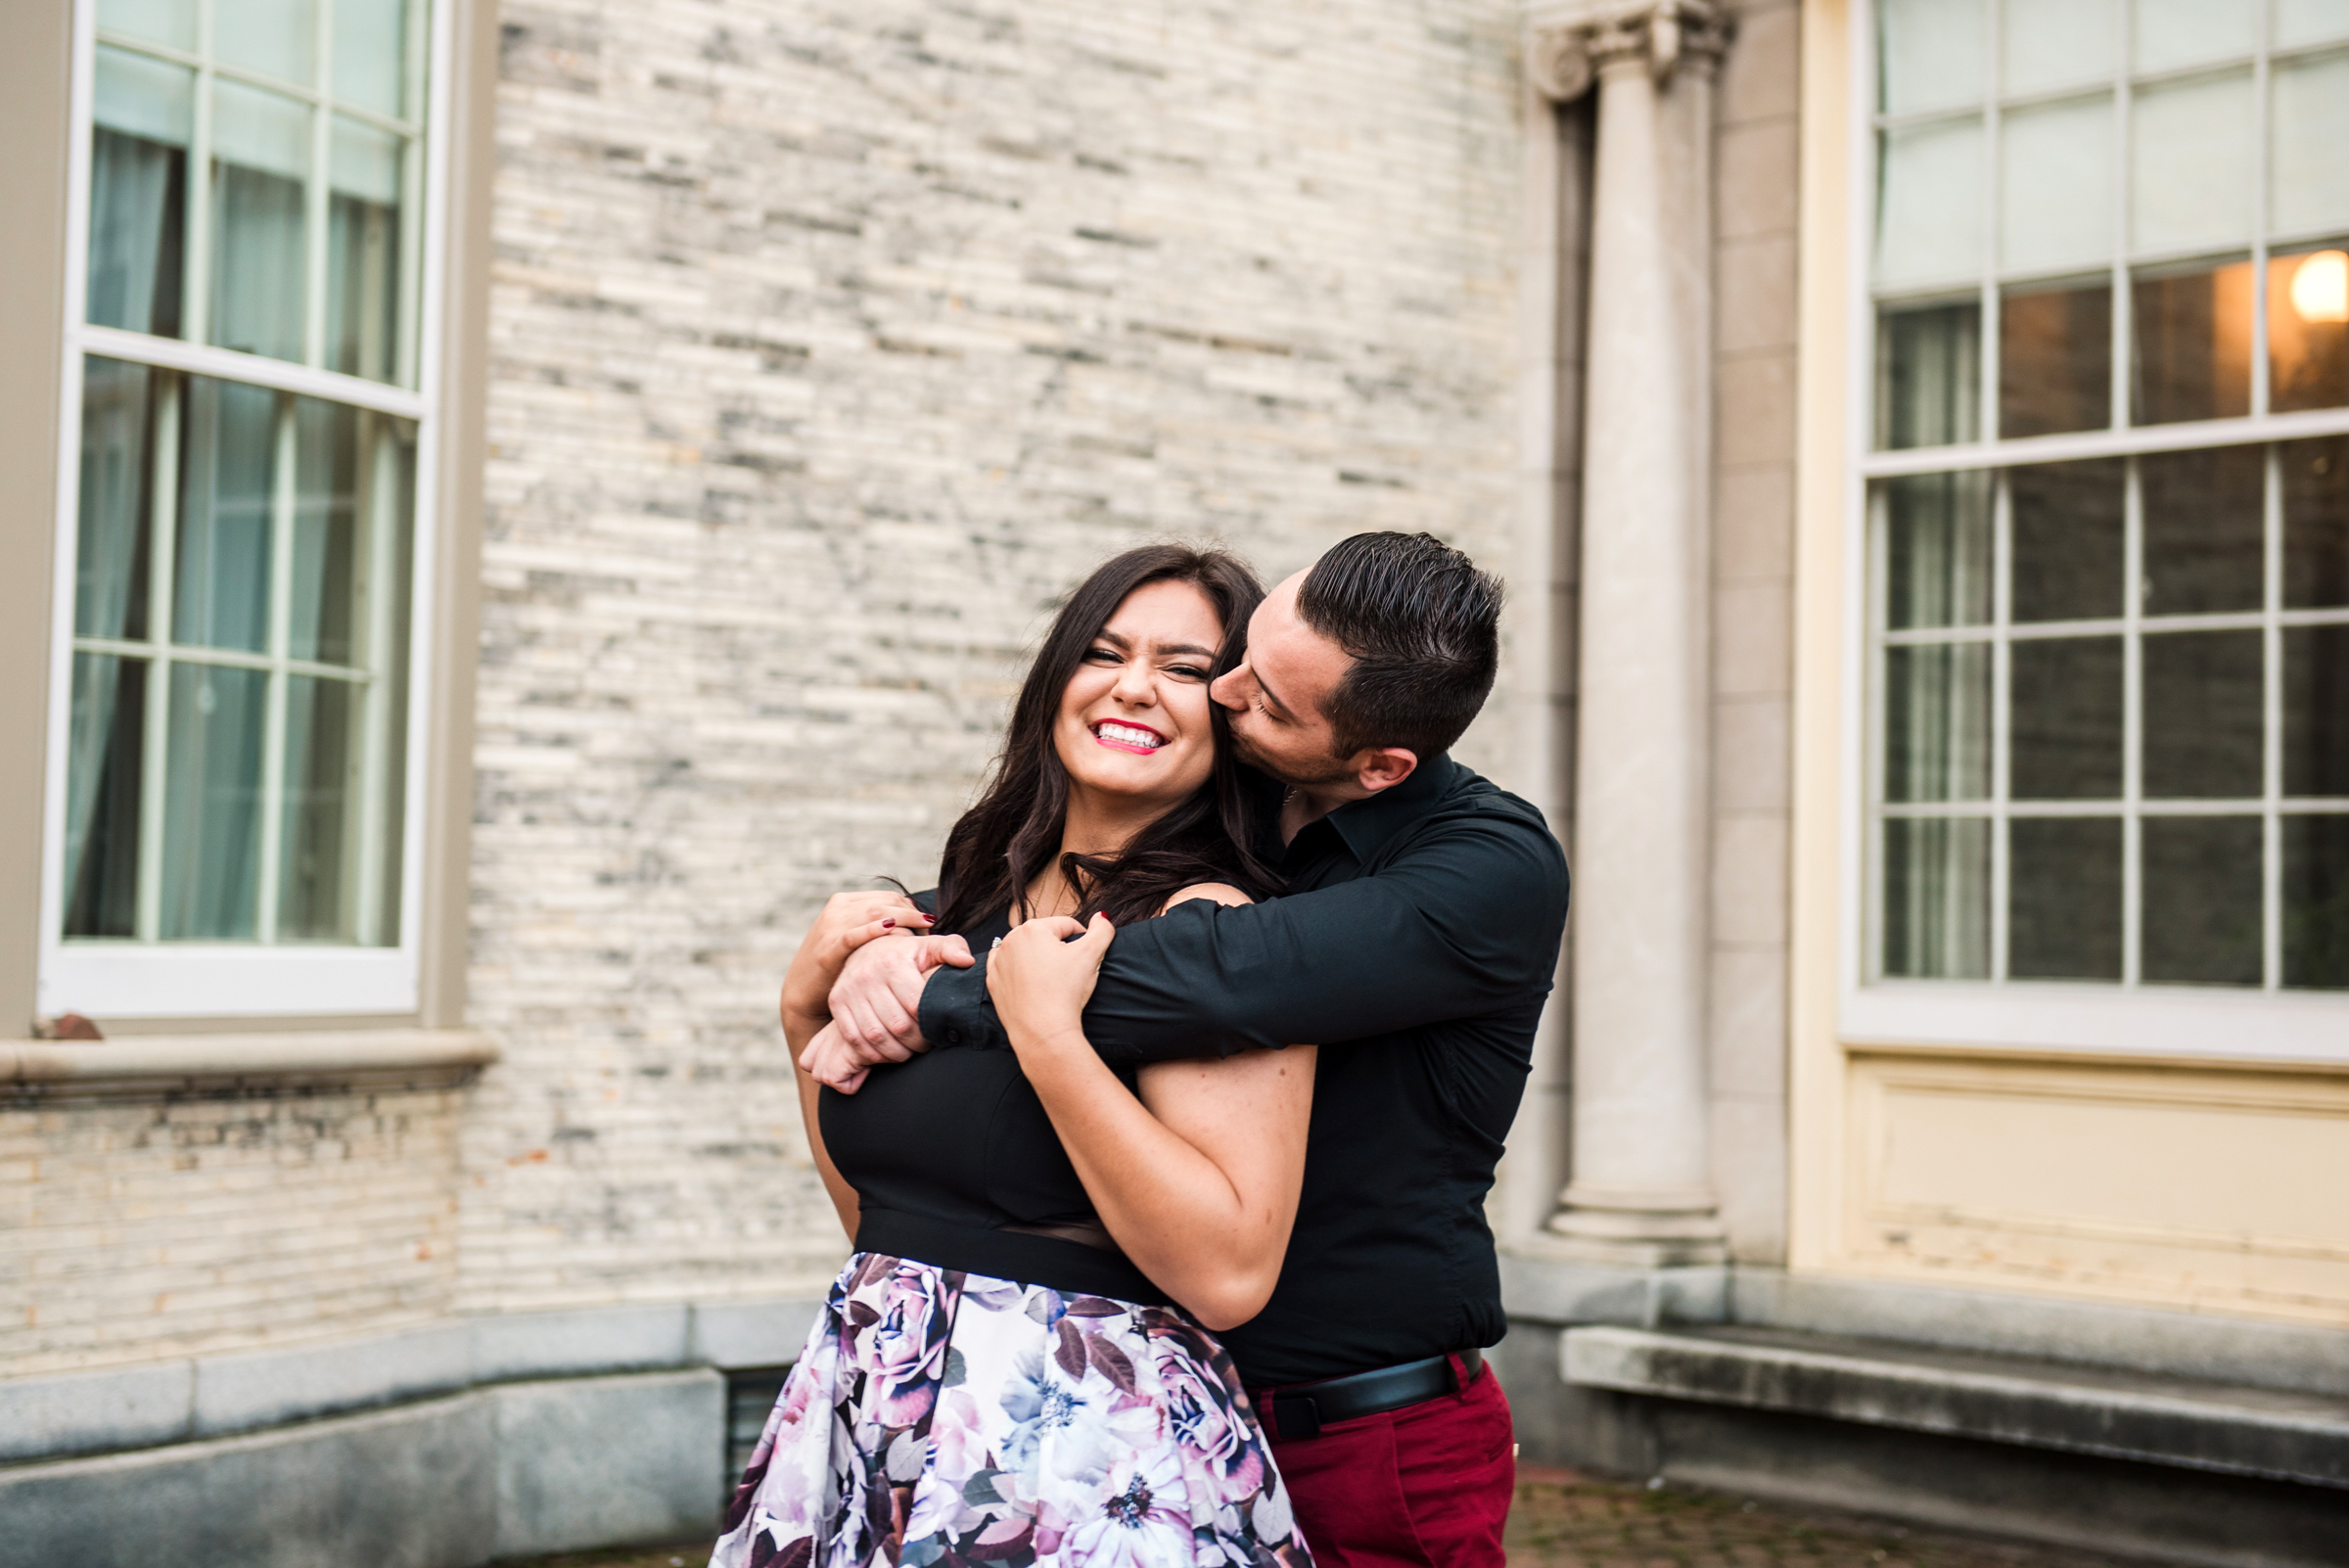 George_Eastman_House_Rochester_Engagement_Session_JILL_STUDIO_Rochester_NY_Photographer_DSC_6294.jpg